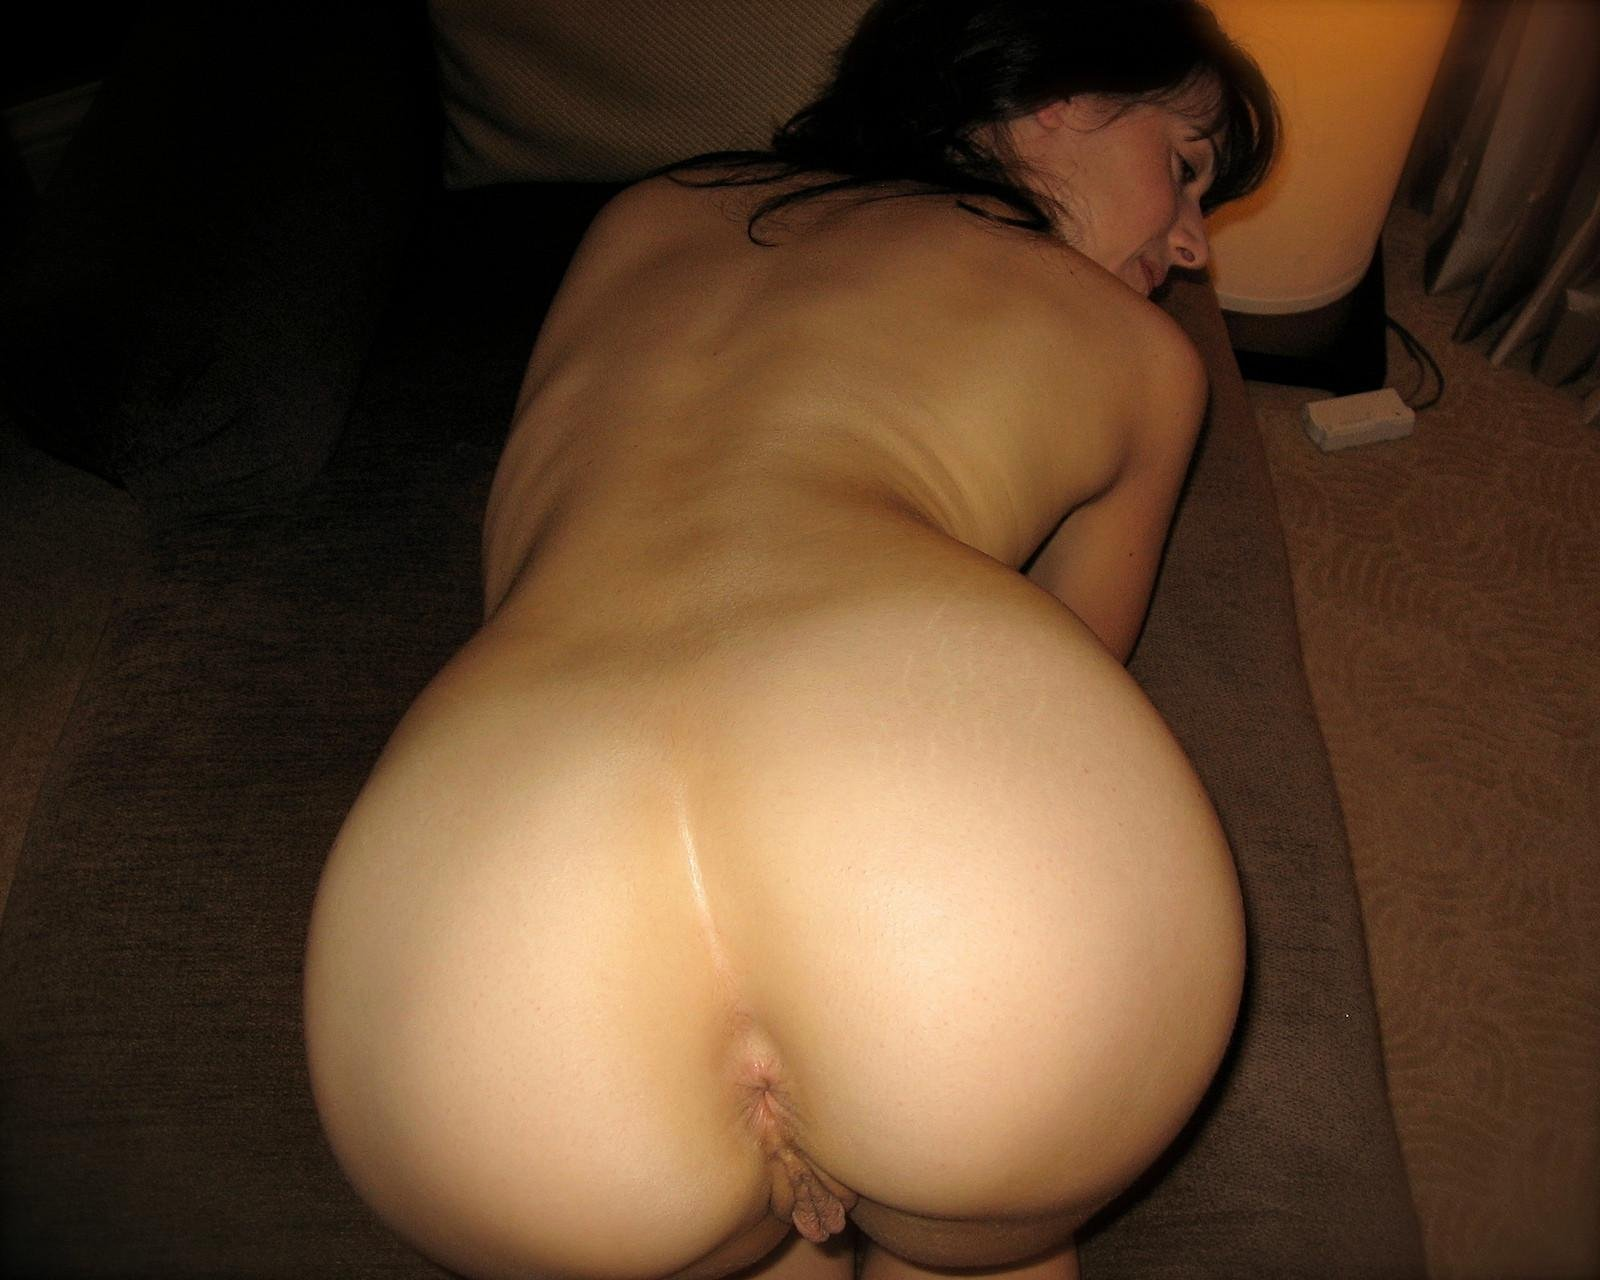 Ass beeg sicflics xxl anal fire extinguisher fucked and fisted amateur photoz